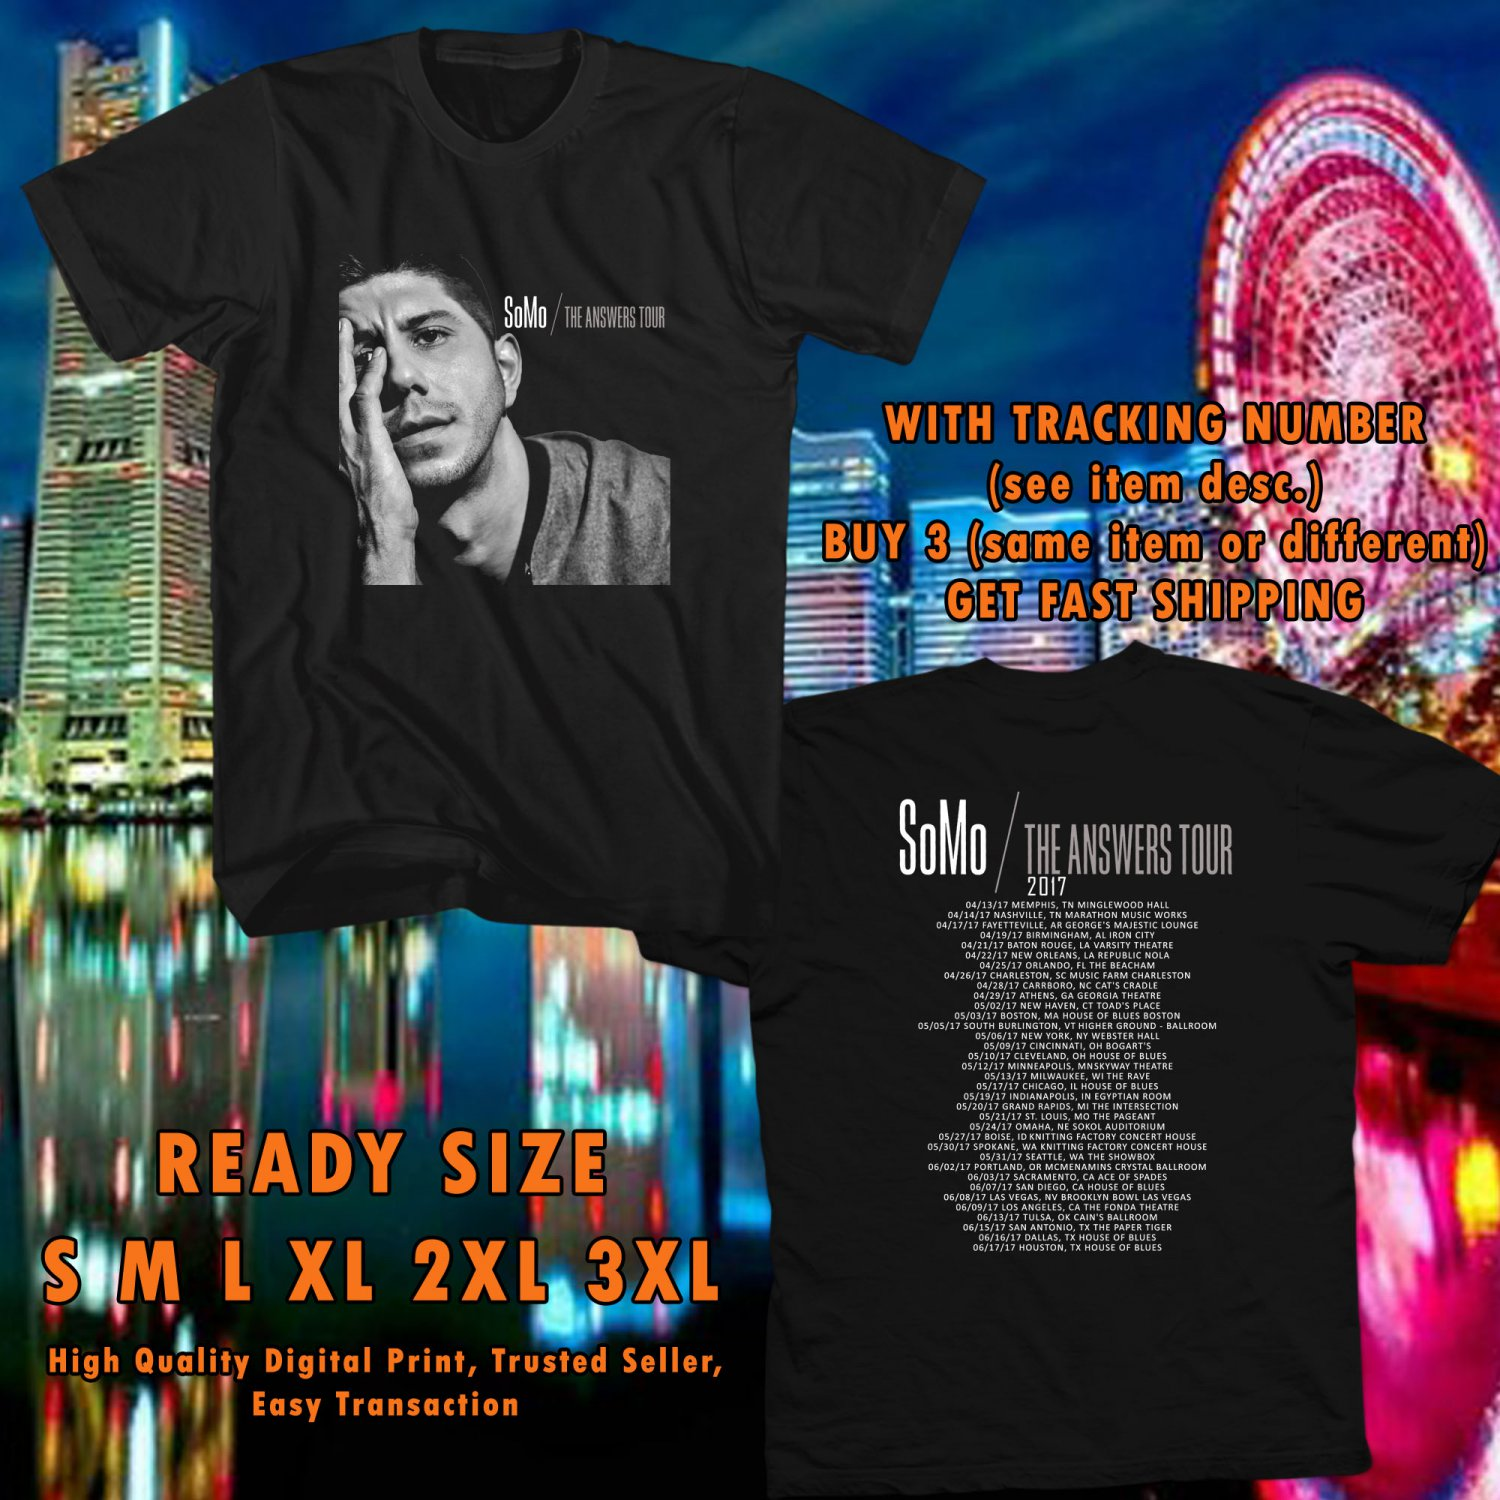 NEW SOMO THE ANSWER TOUR 2017 black TEE 2 SIDE DMTR